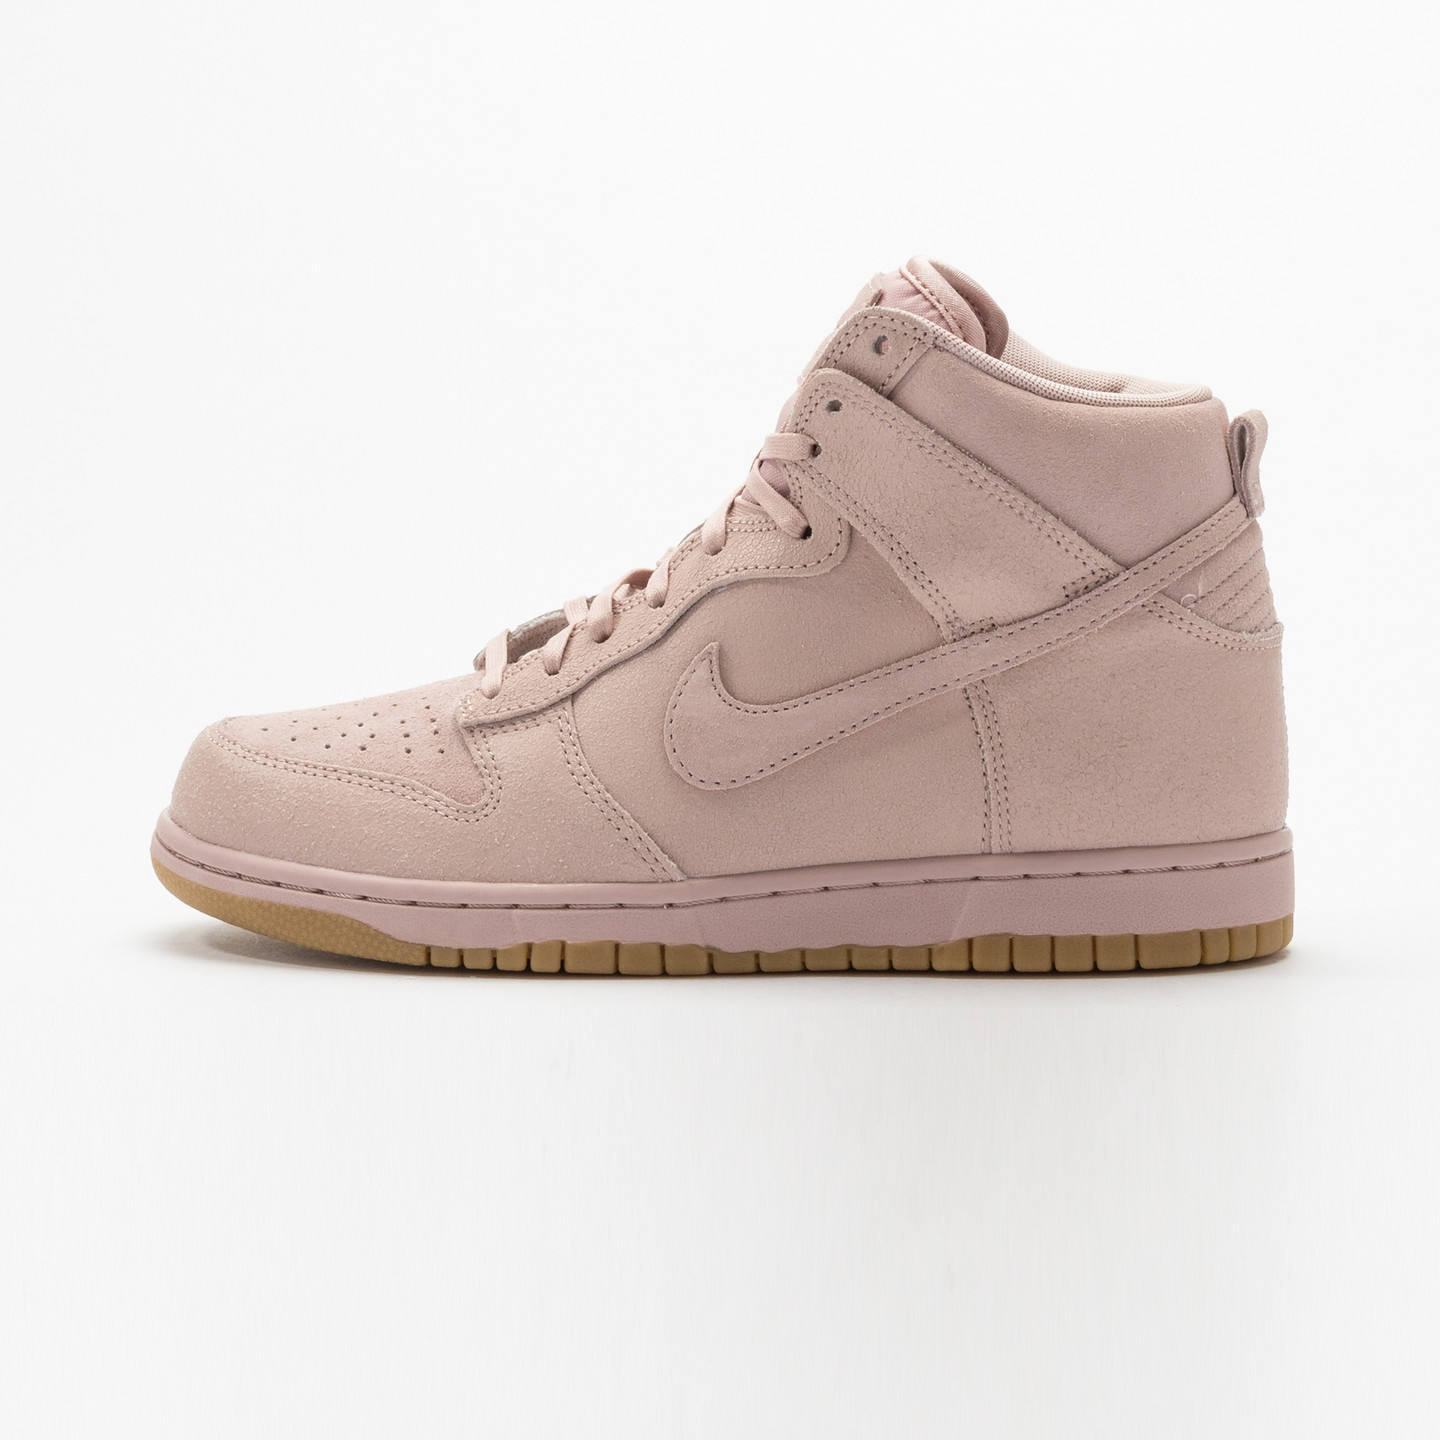 Nike Wmns Dunk High Premium Pink Oxford / Bright Melon 881232-600